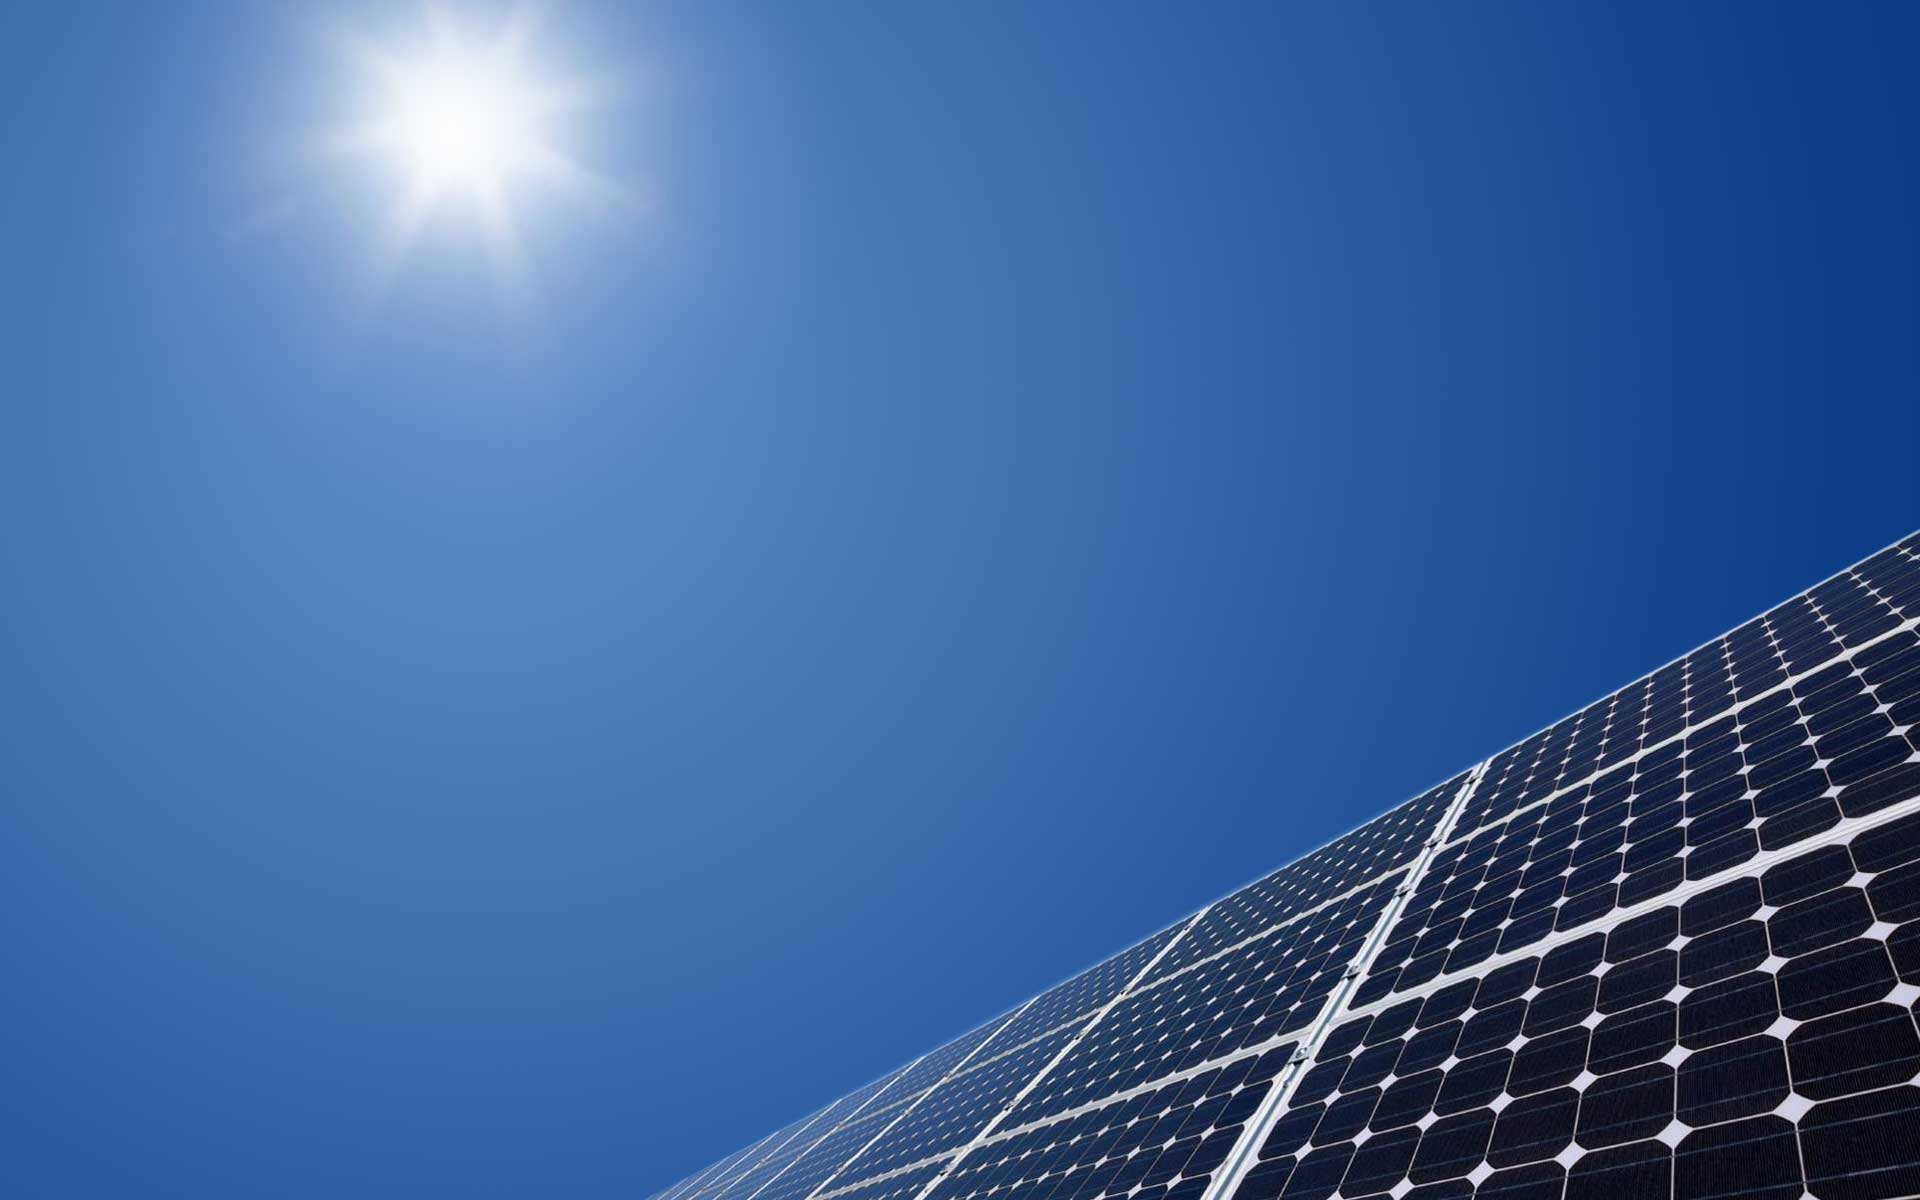 Cell Phone Wallpaper Girls Download Solar Cell Wallpaper Gallery